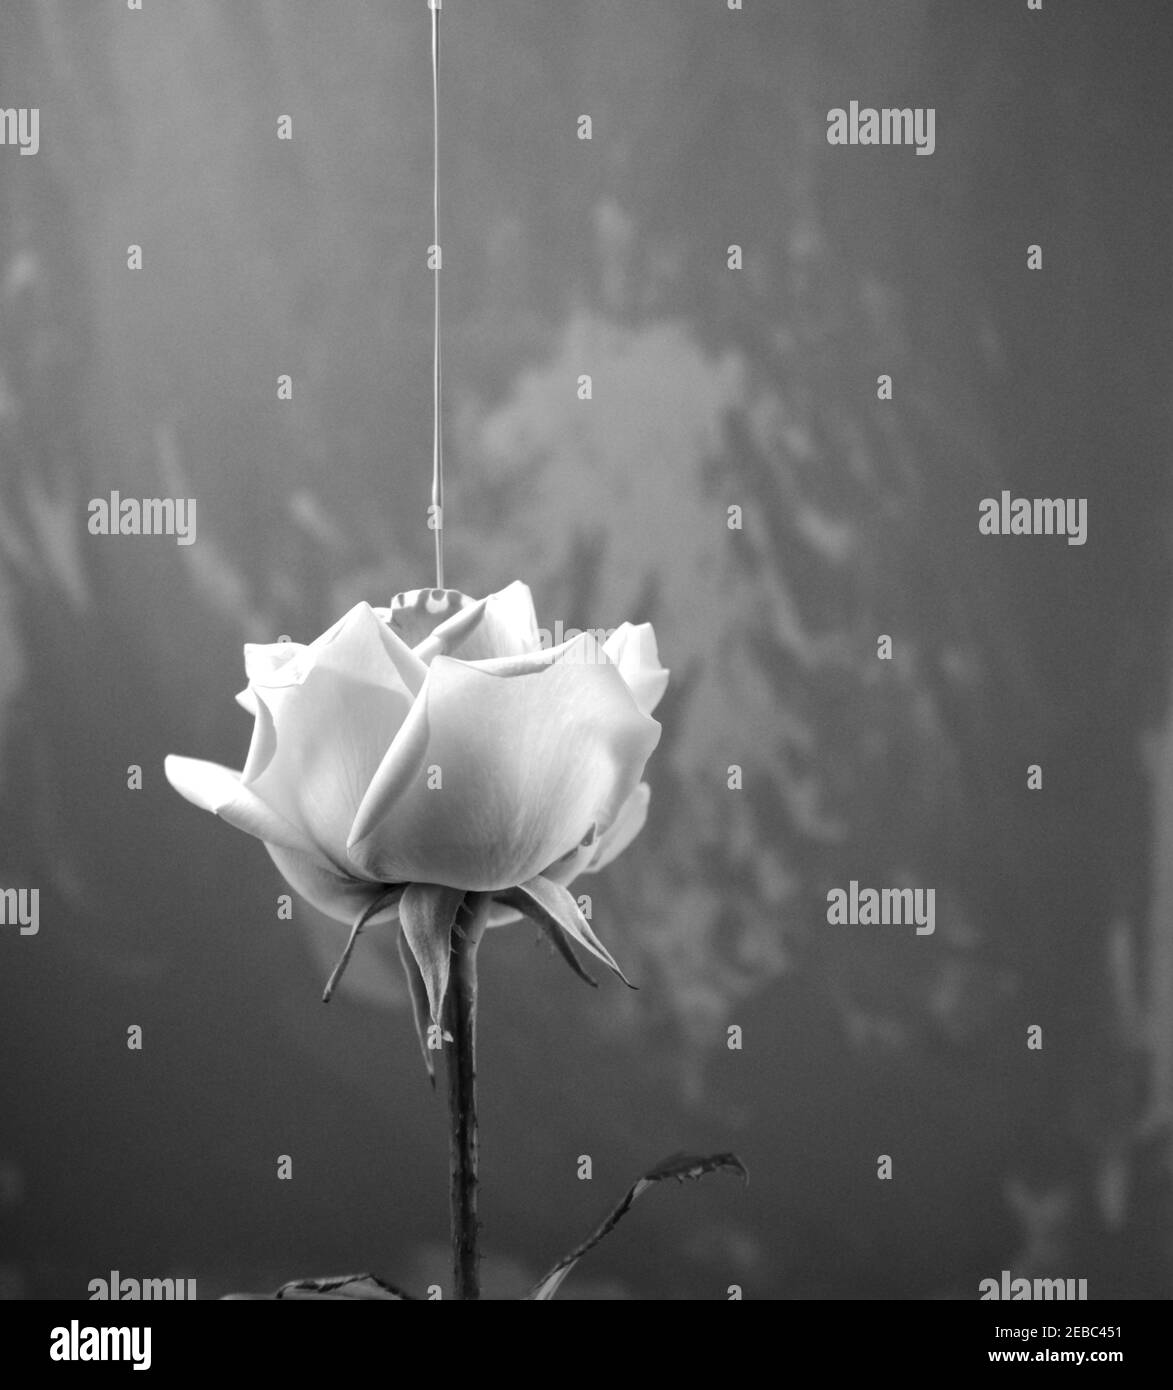 Black and white vintage style photography. Acrylic fluid color pouring on rose. Head on, side view of single bloom floral with irregular art. Stock Photo